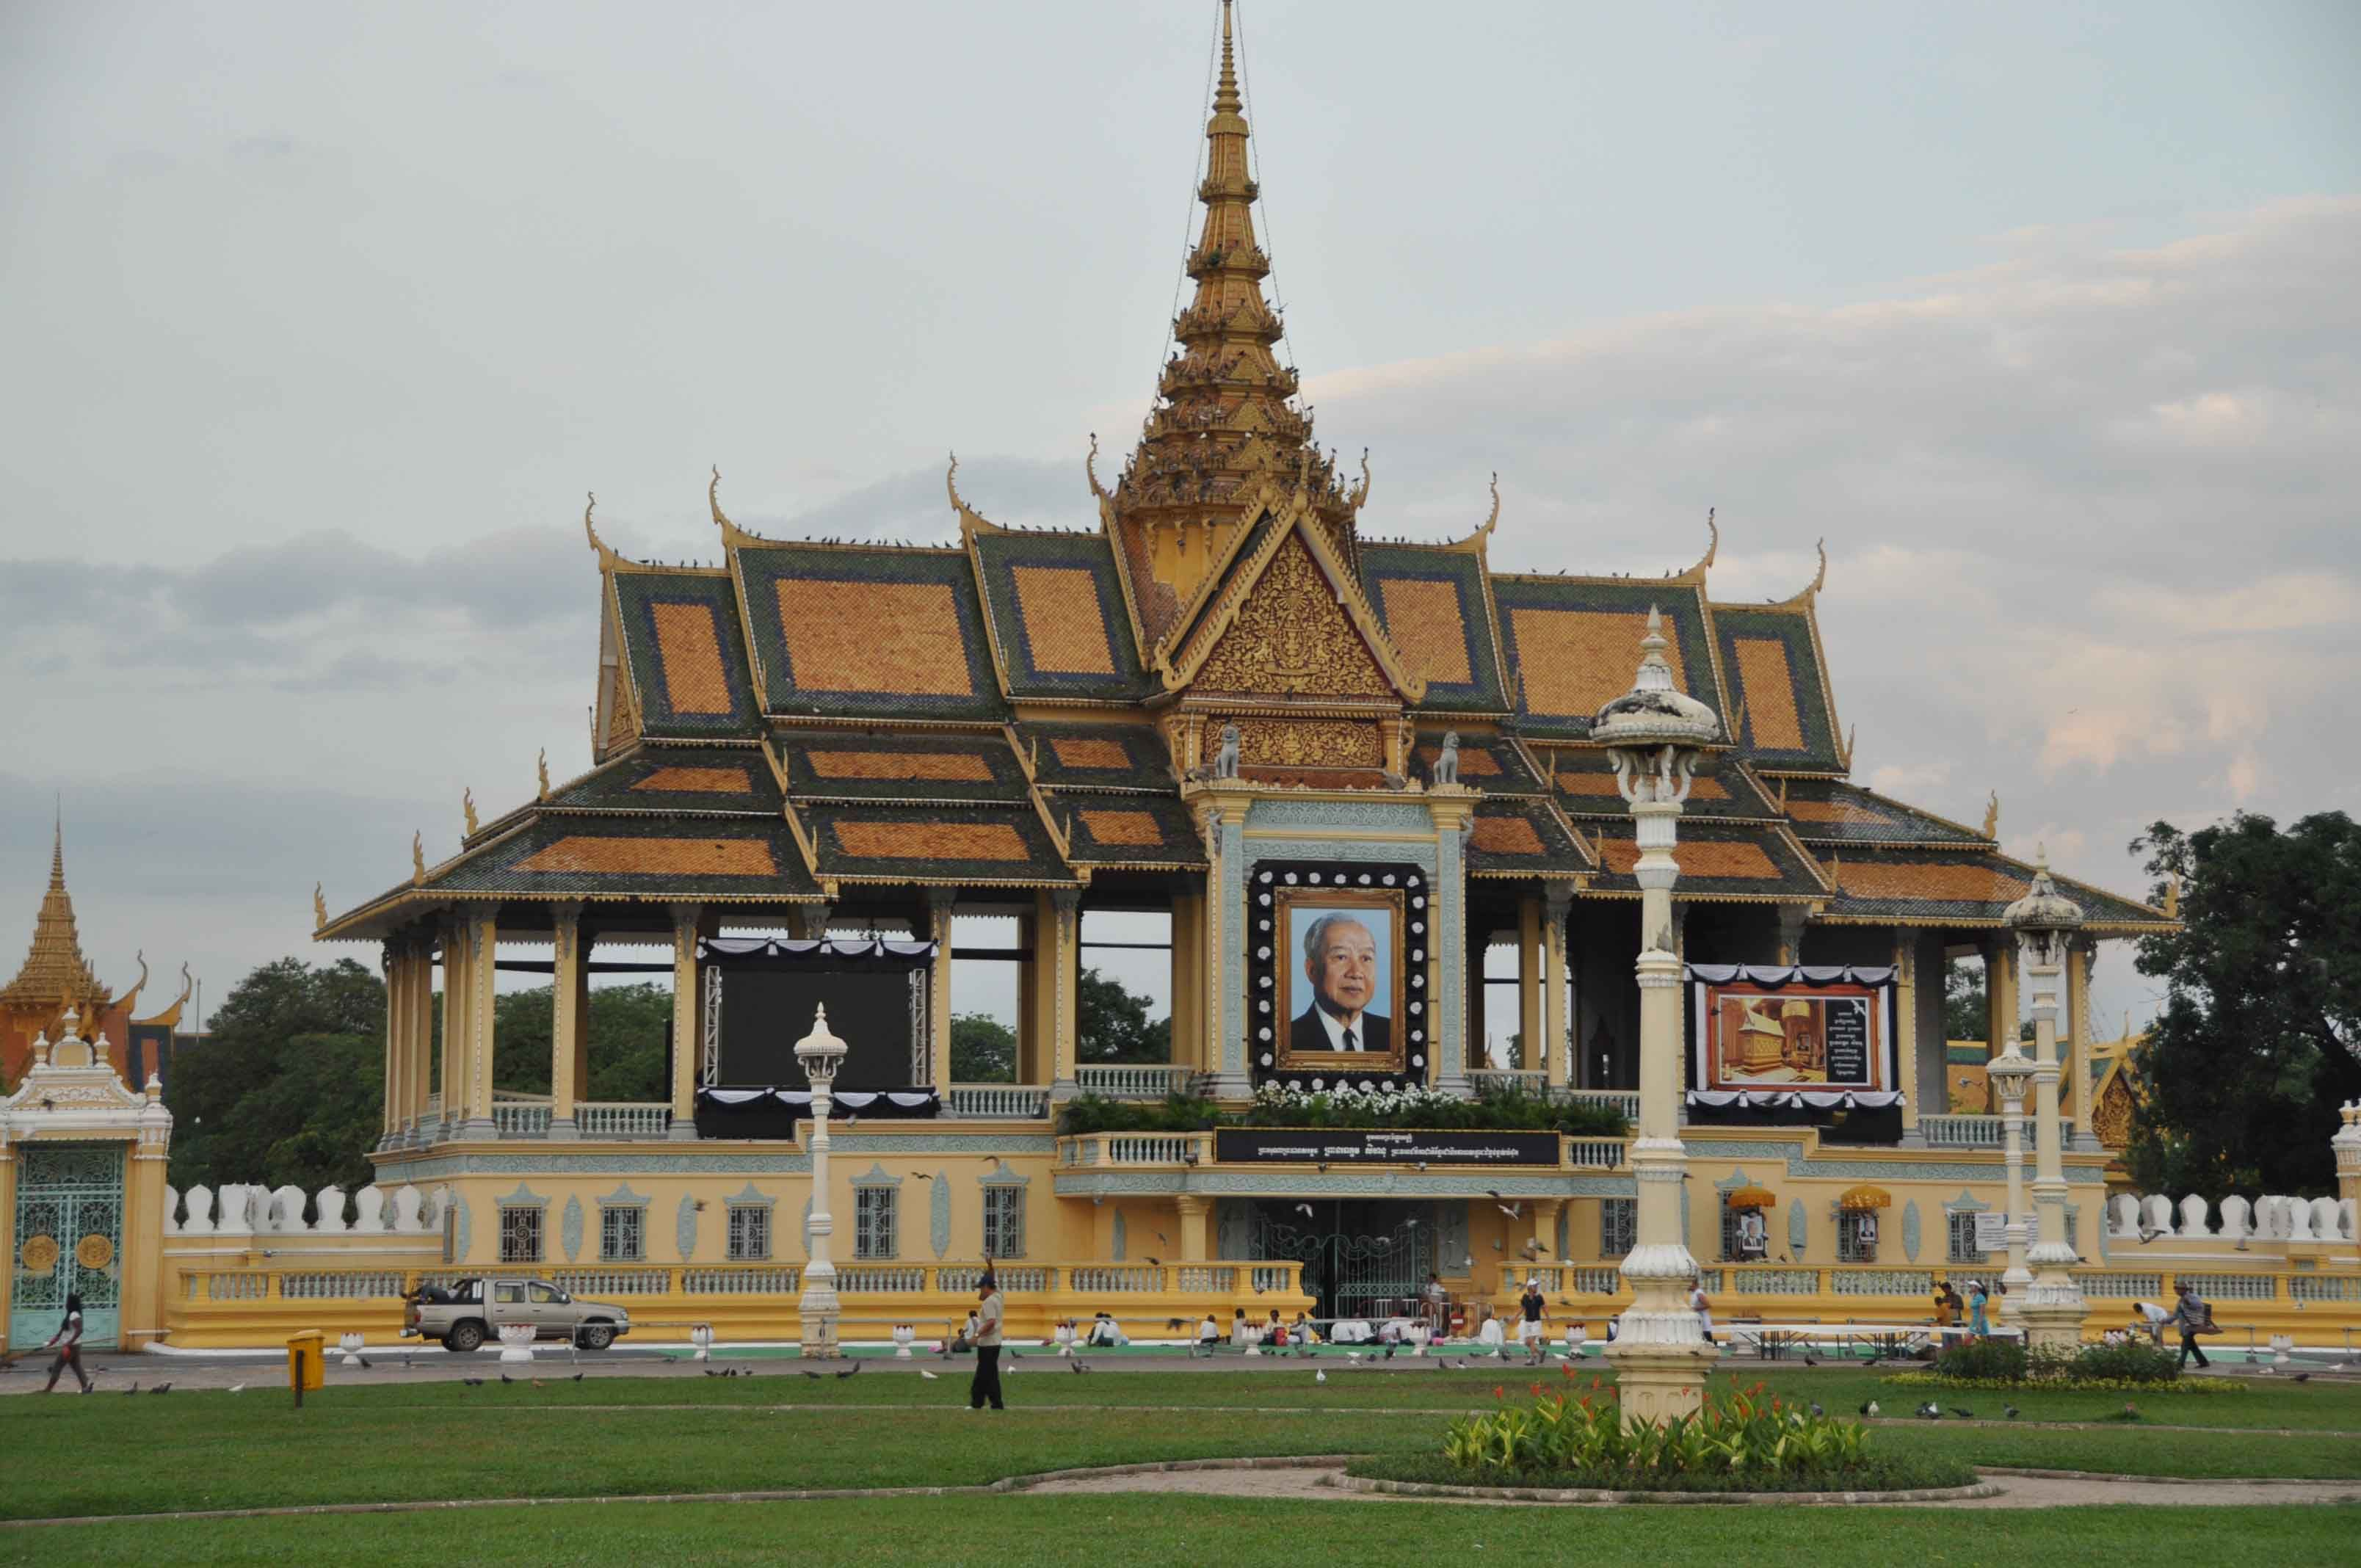 2 days Phnom Penh all-round (excl. hotel) – Multi-Day Modules Phnom Penh-Siem Reap | Phnom Penh is a city with a rich history. During these two days, you'll get to know everything about it by visiting the Choeung Ek and genocide museum, going around the city on a tuk-tuk and biking to the Islands of the Mekong.